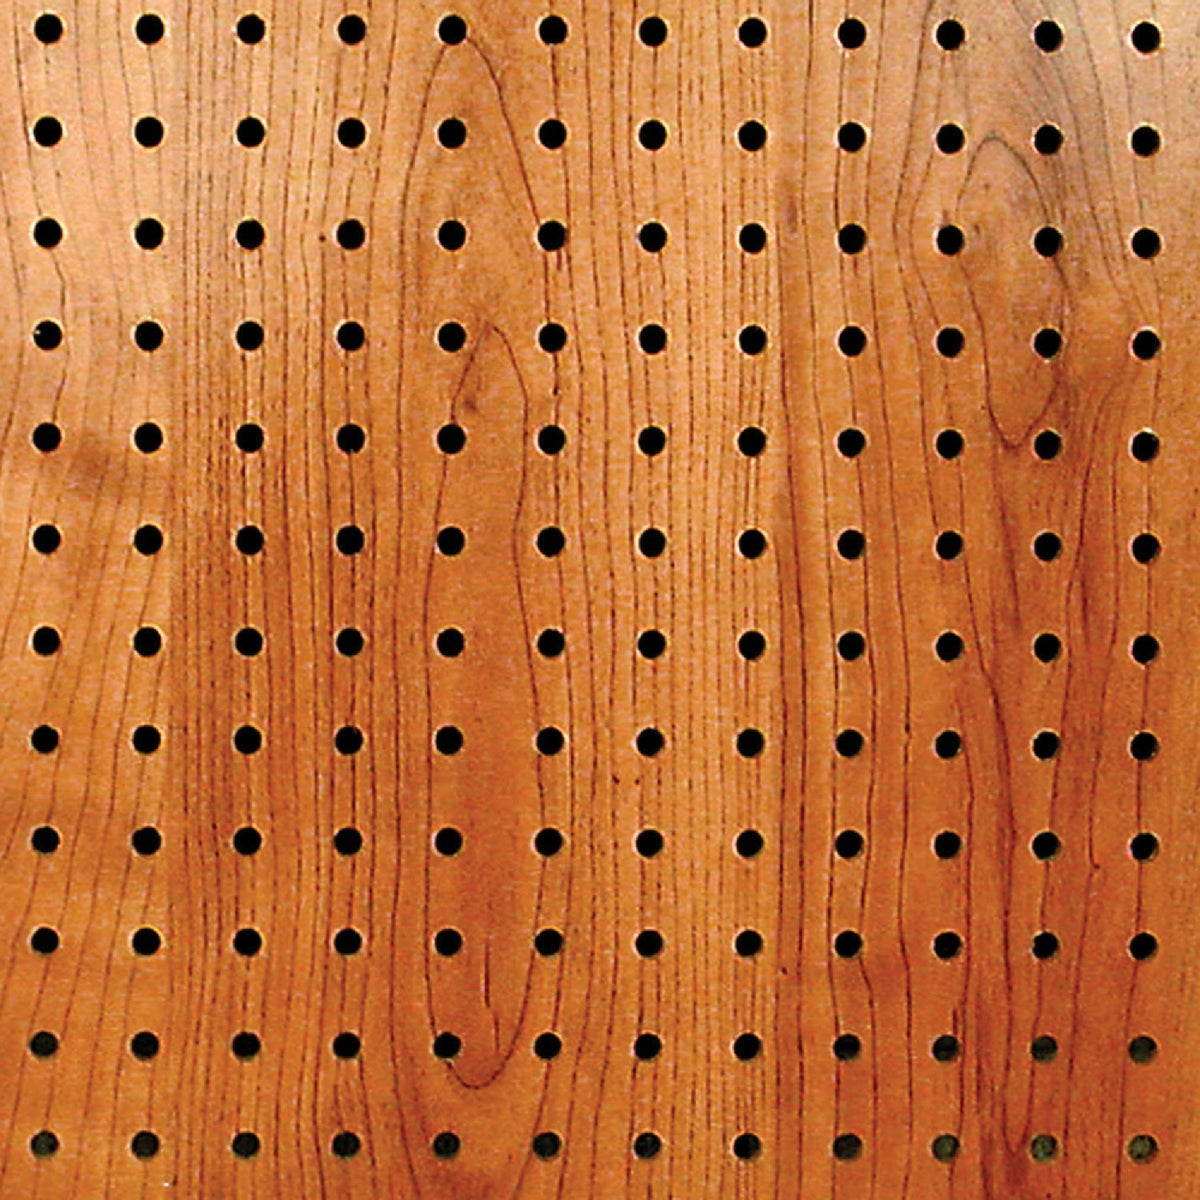 WINDSOR CHERRY PEGBOARD - 154 by Dpi Decorative Panel